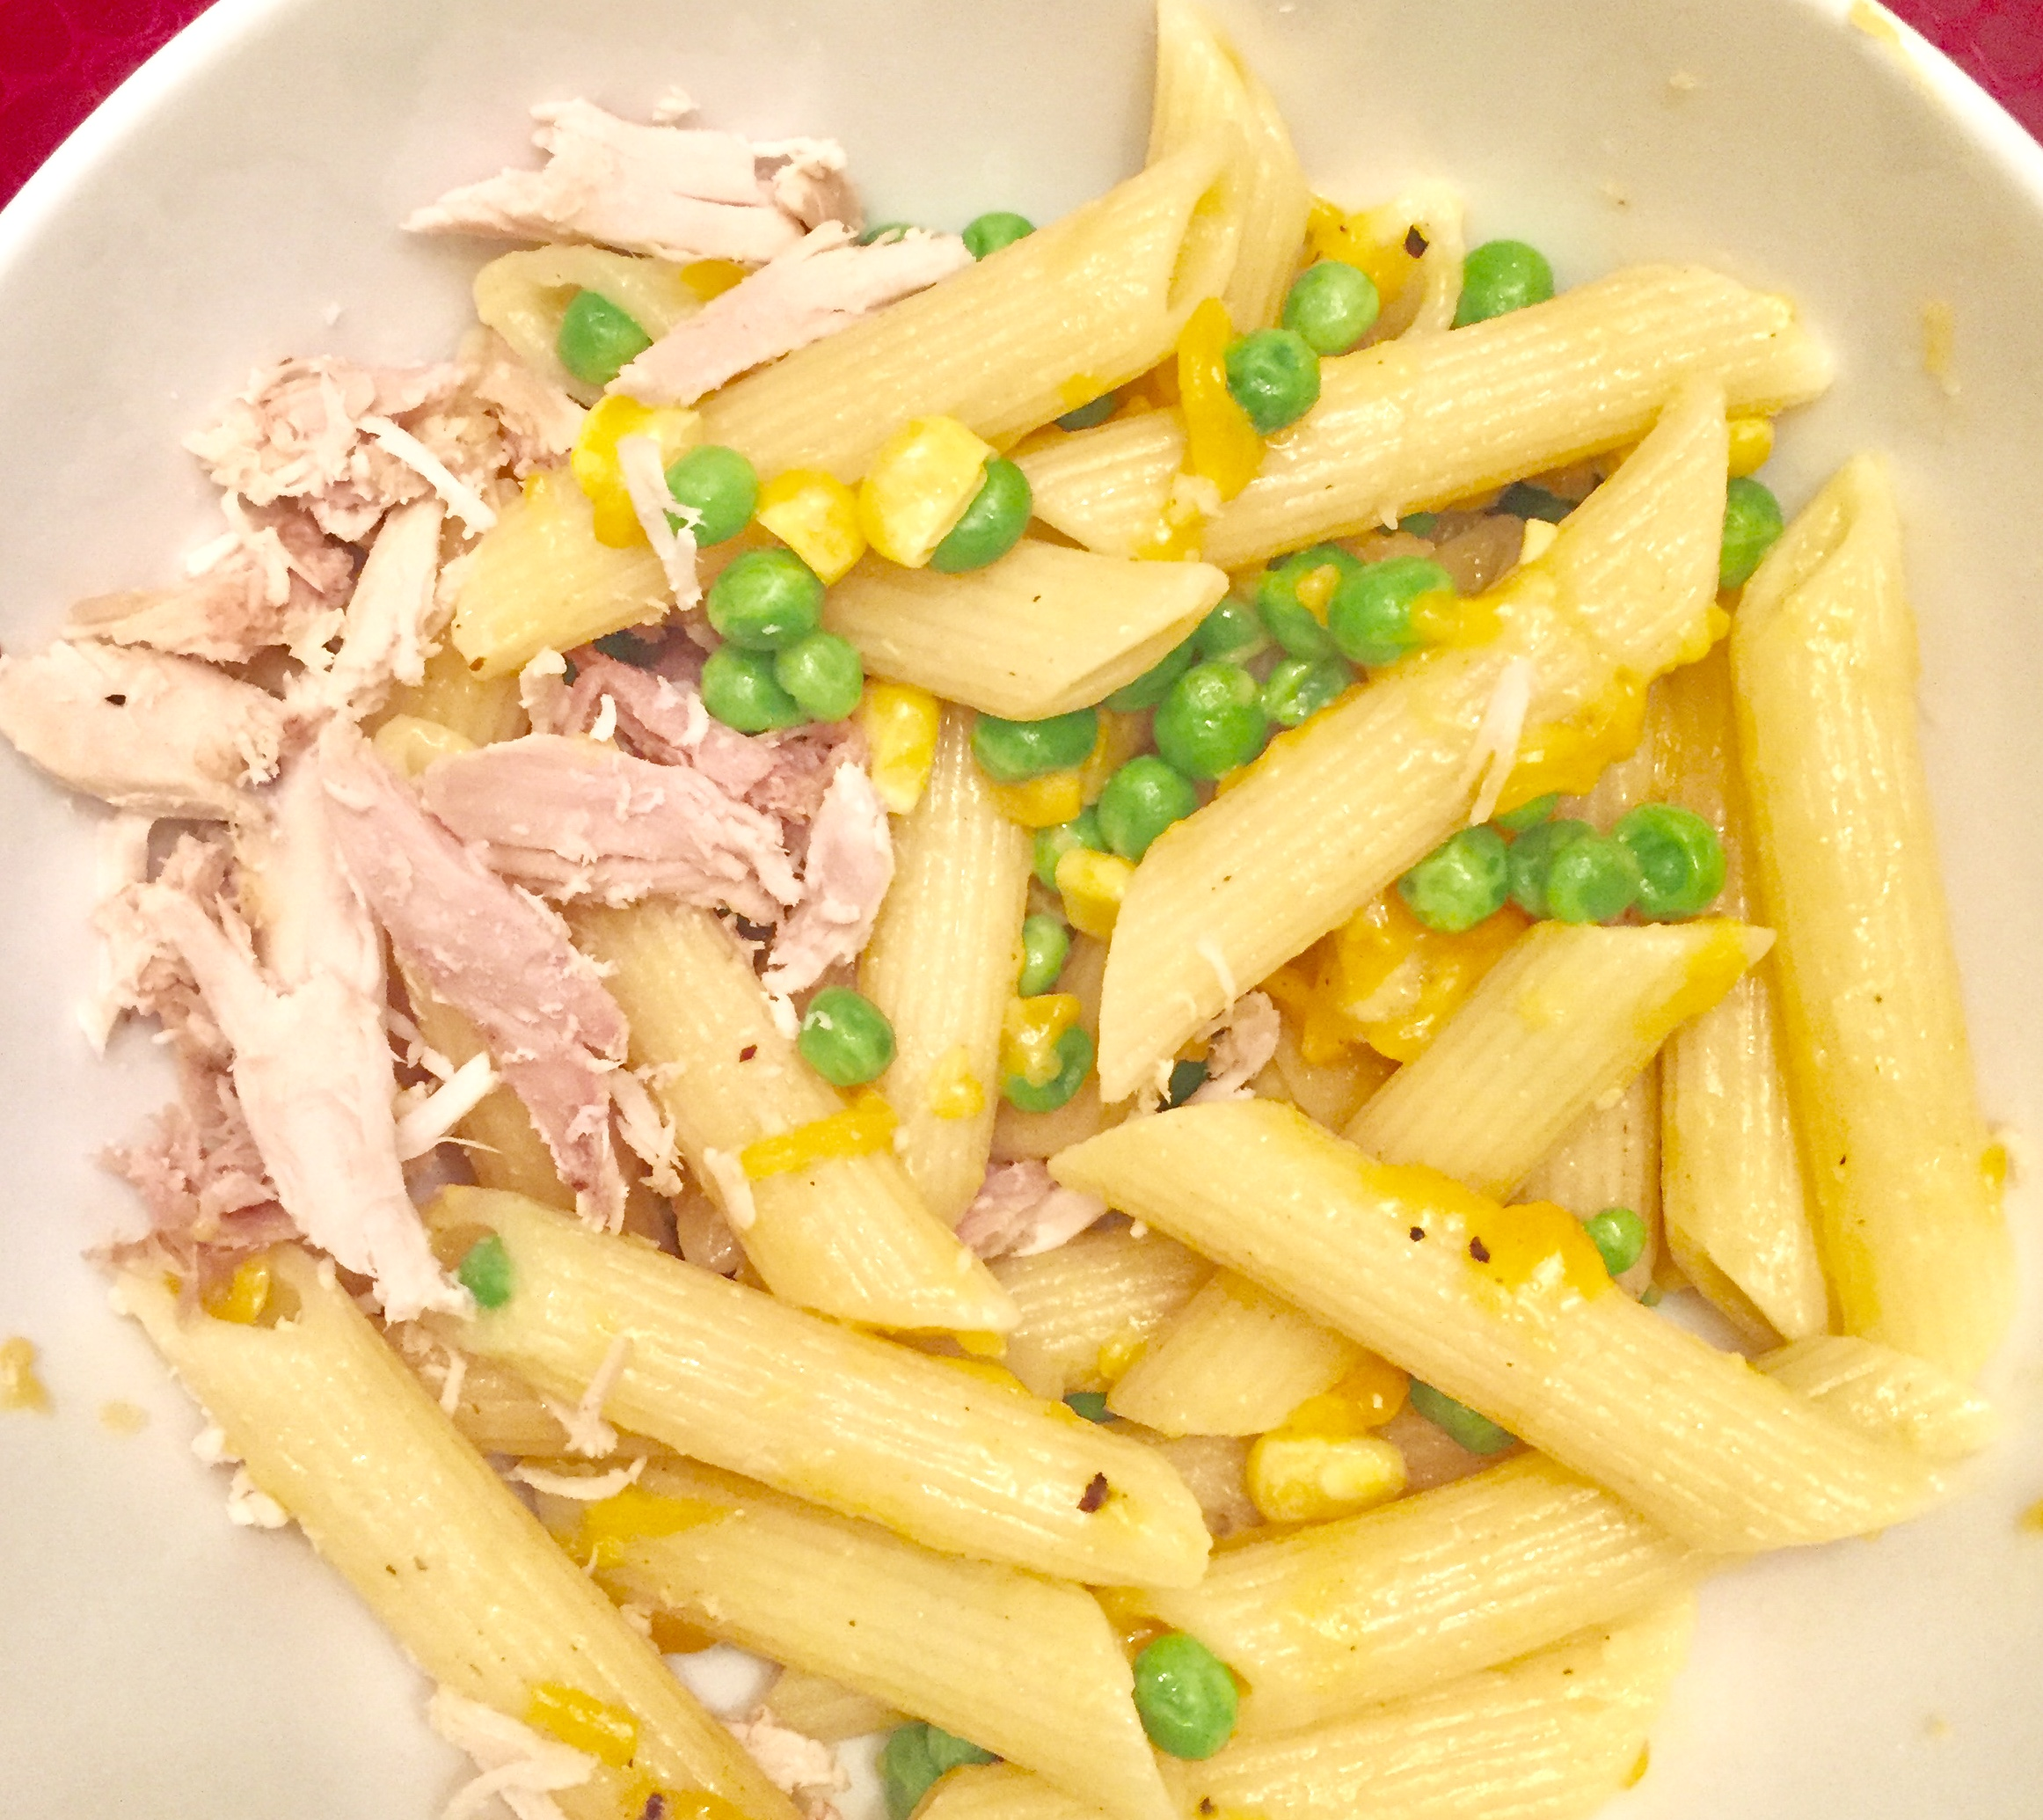 Whole wheat pasta, corn, peas, chedar cheese and chicken.